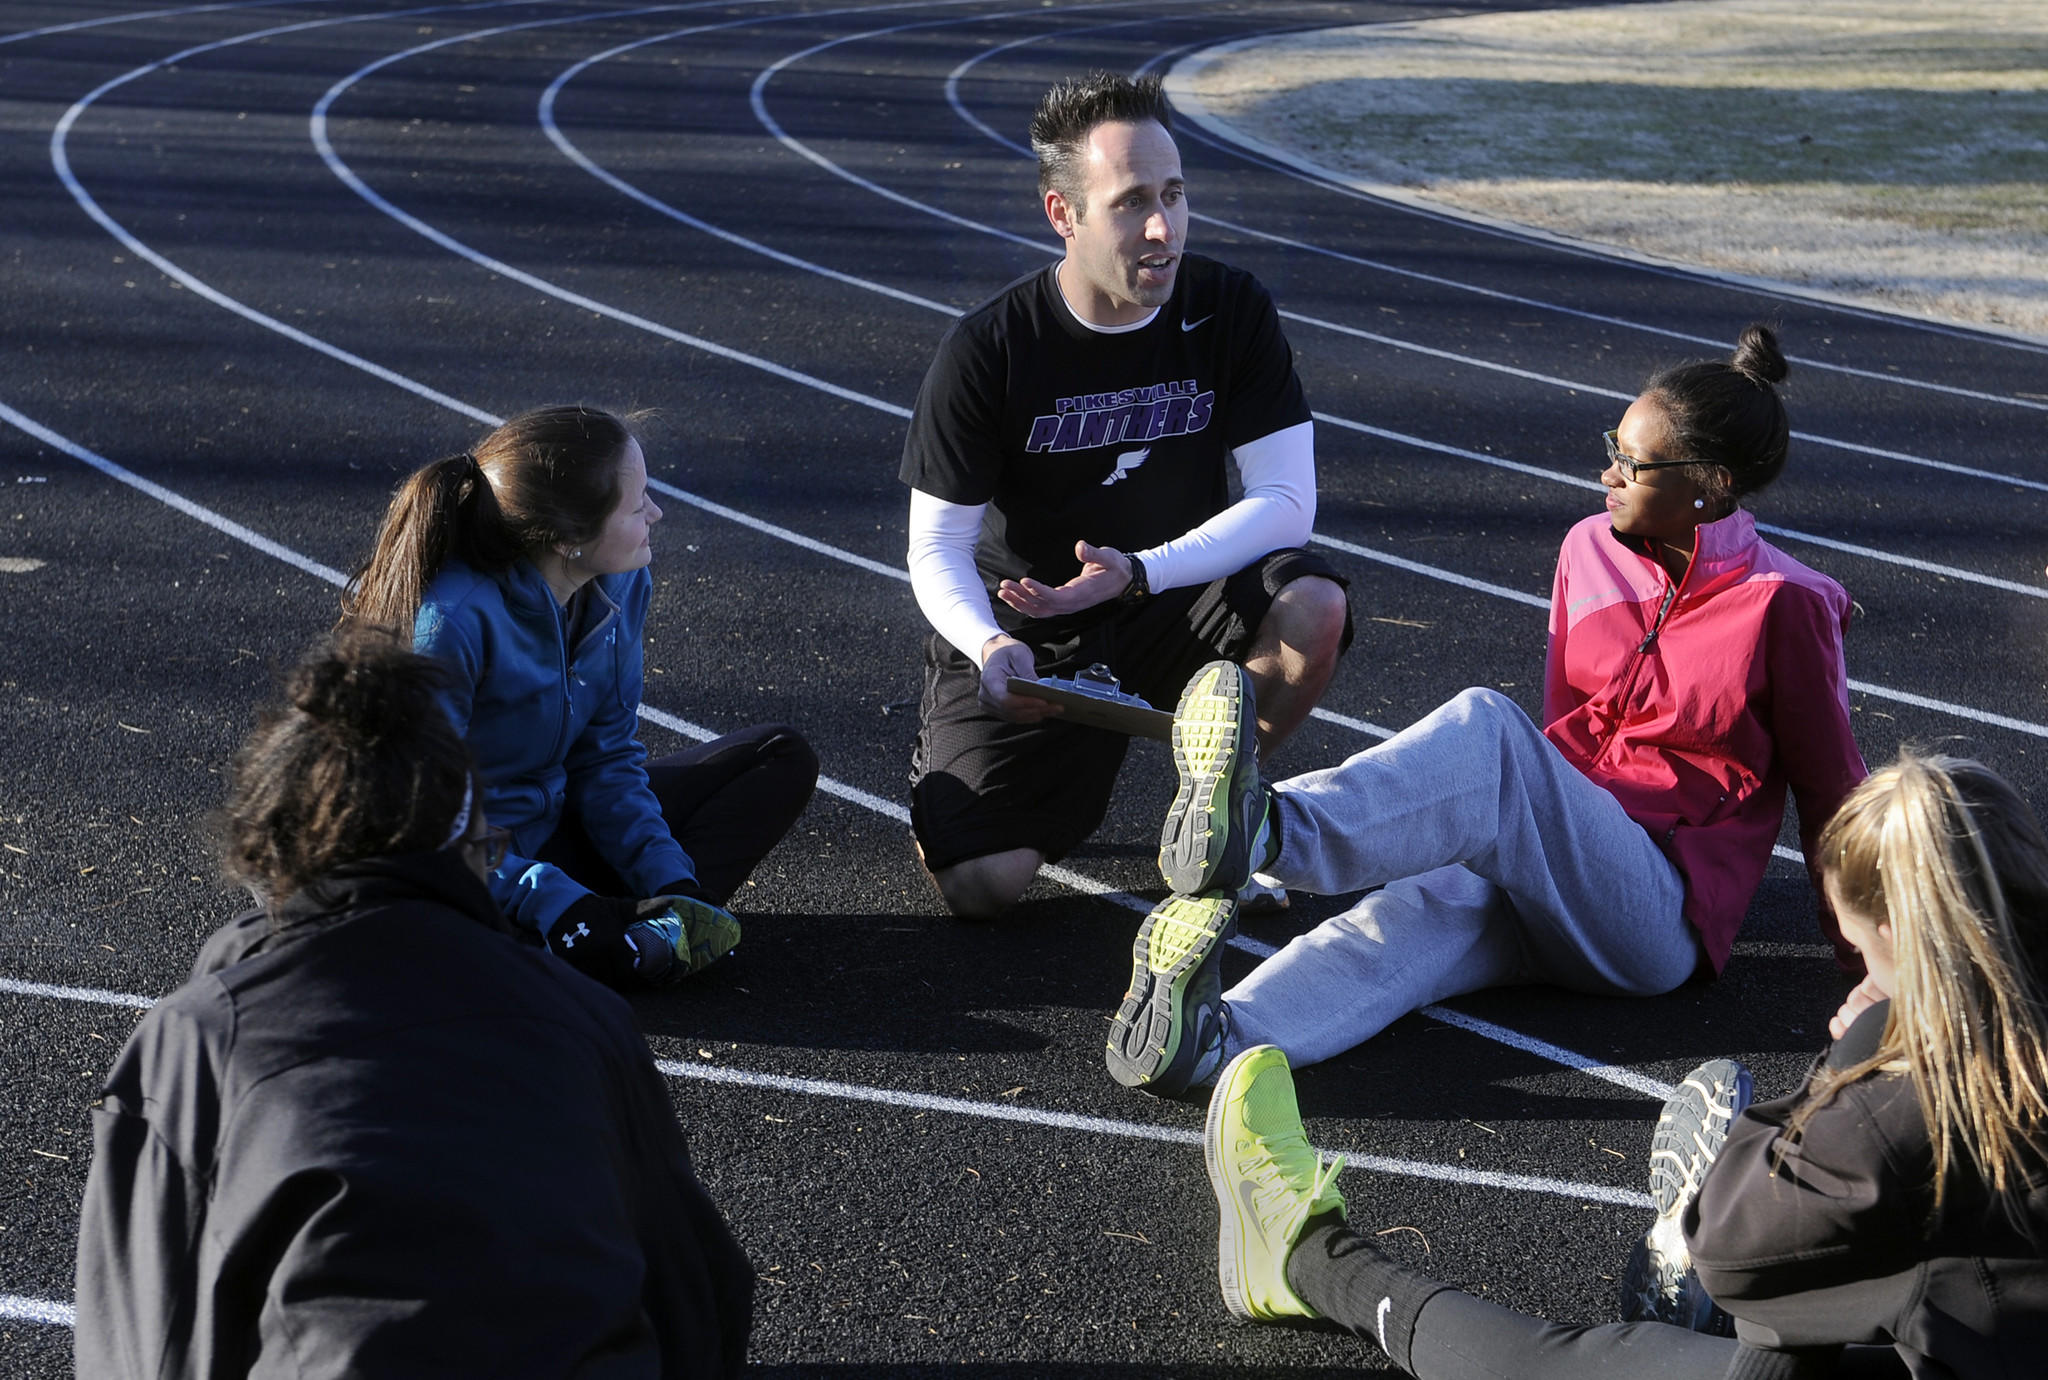 Pikesville girls track coach Adam Hittner talks with some of the runners as they stretch on the track.